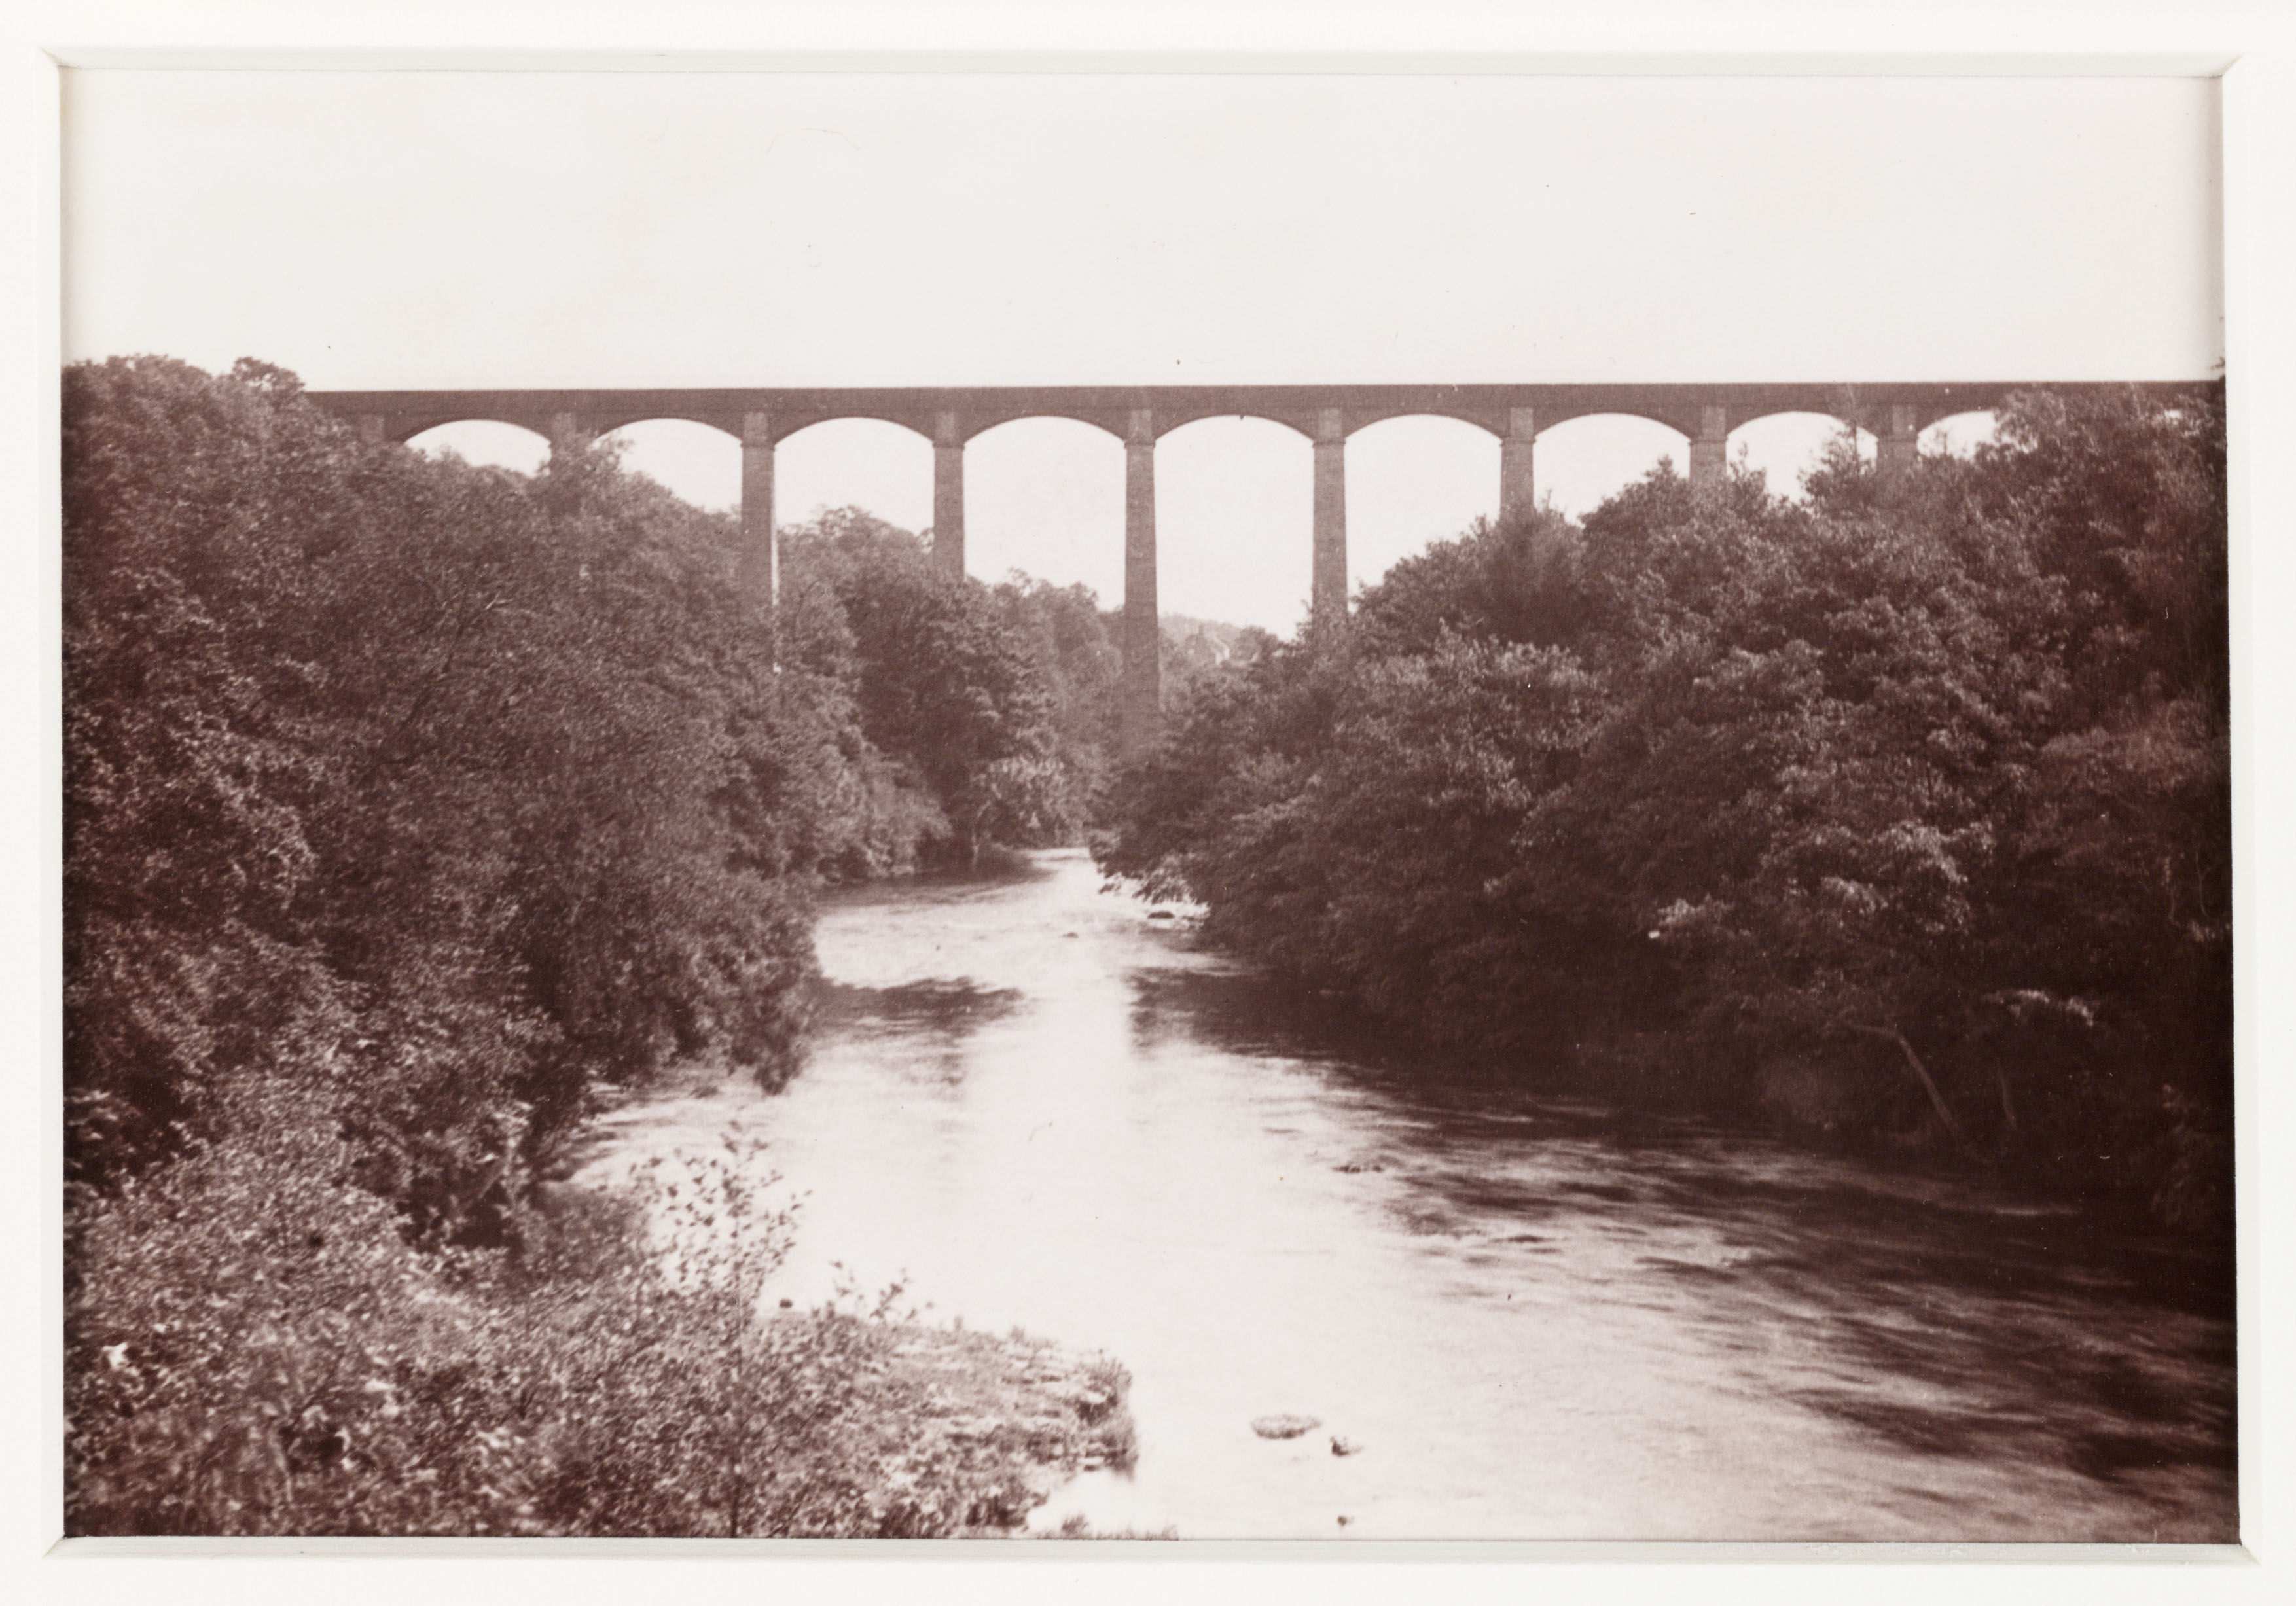 The Pontcysyllte Aqueduct, which carries the Llangollen Canal over the valley of the River Dee, near Wrexham, North Wales. The aqueduct was built by Thomas Telford. (Photo by SSPL/Getty Images)